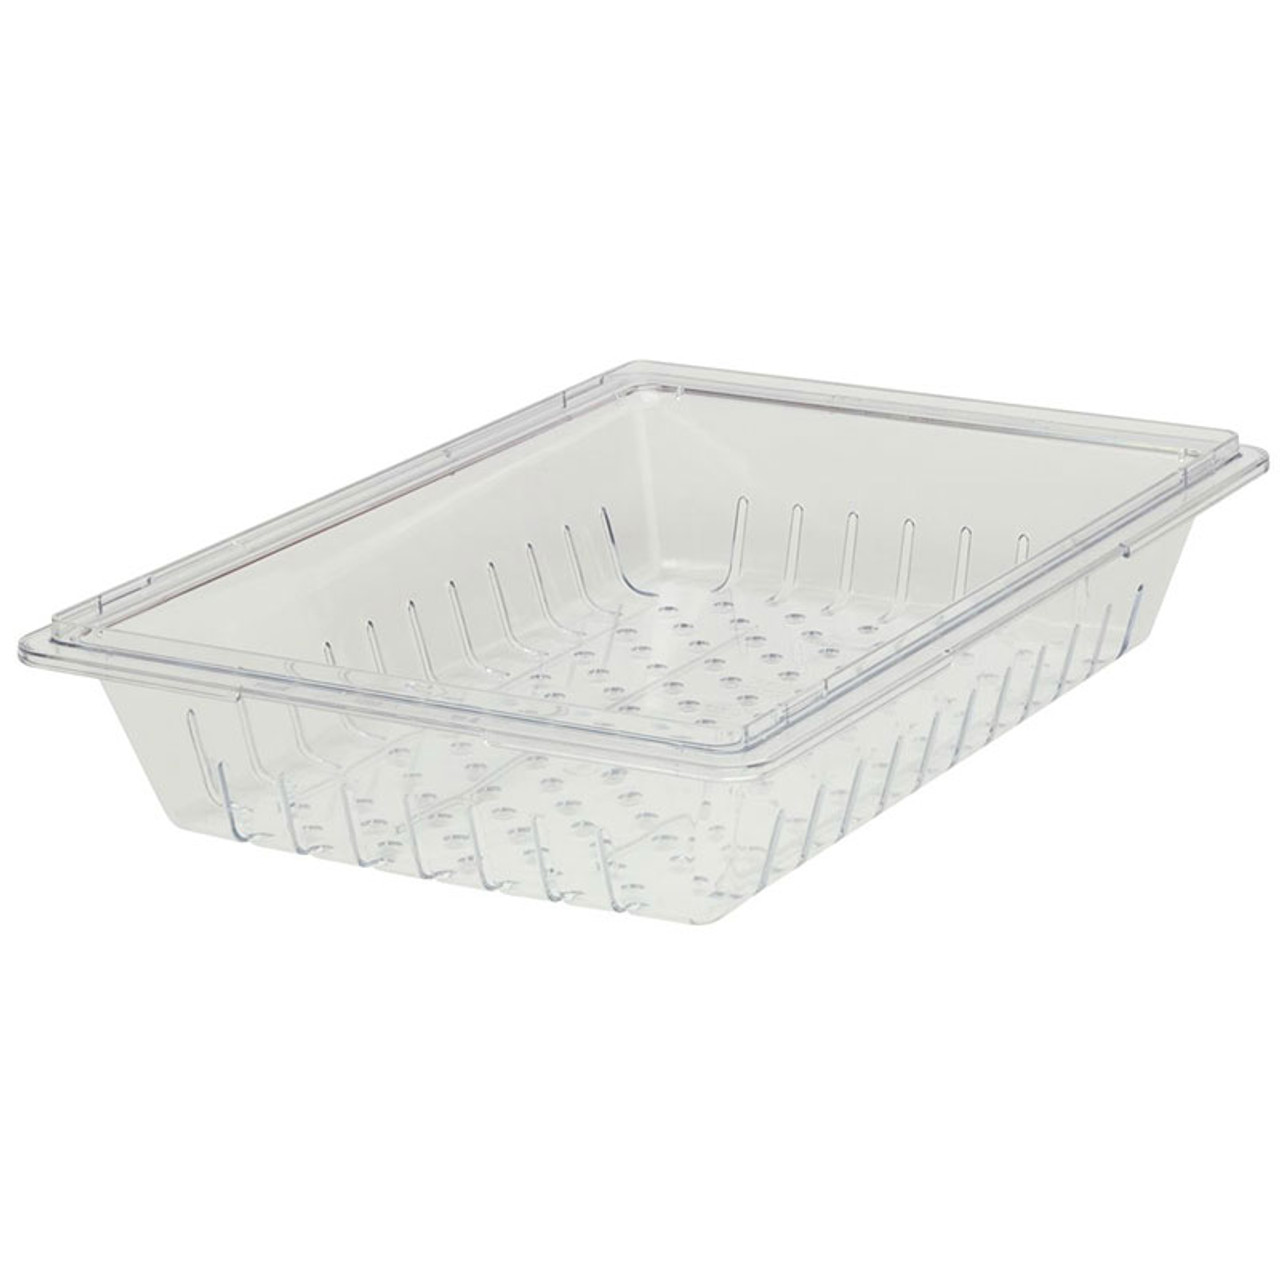 Rubbermaid Colander